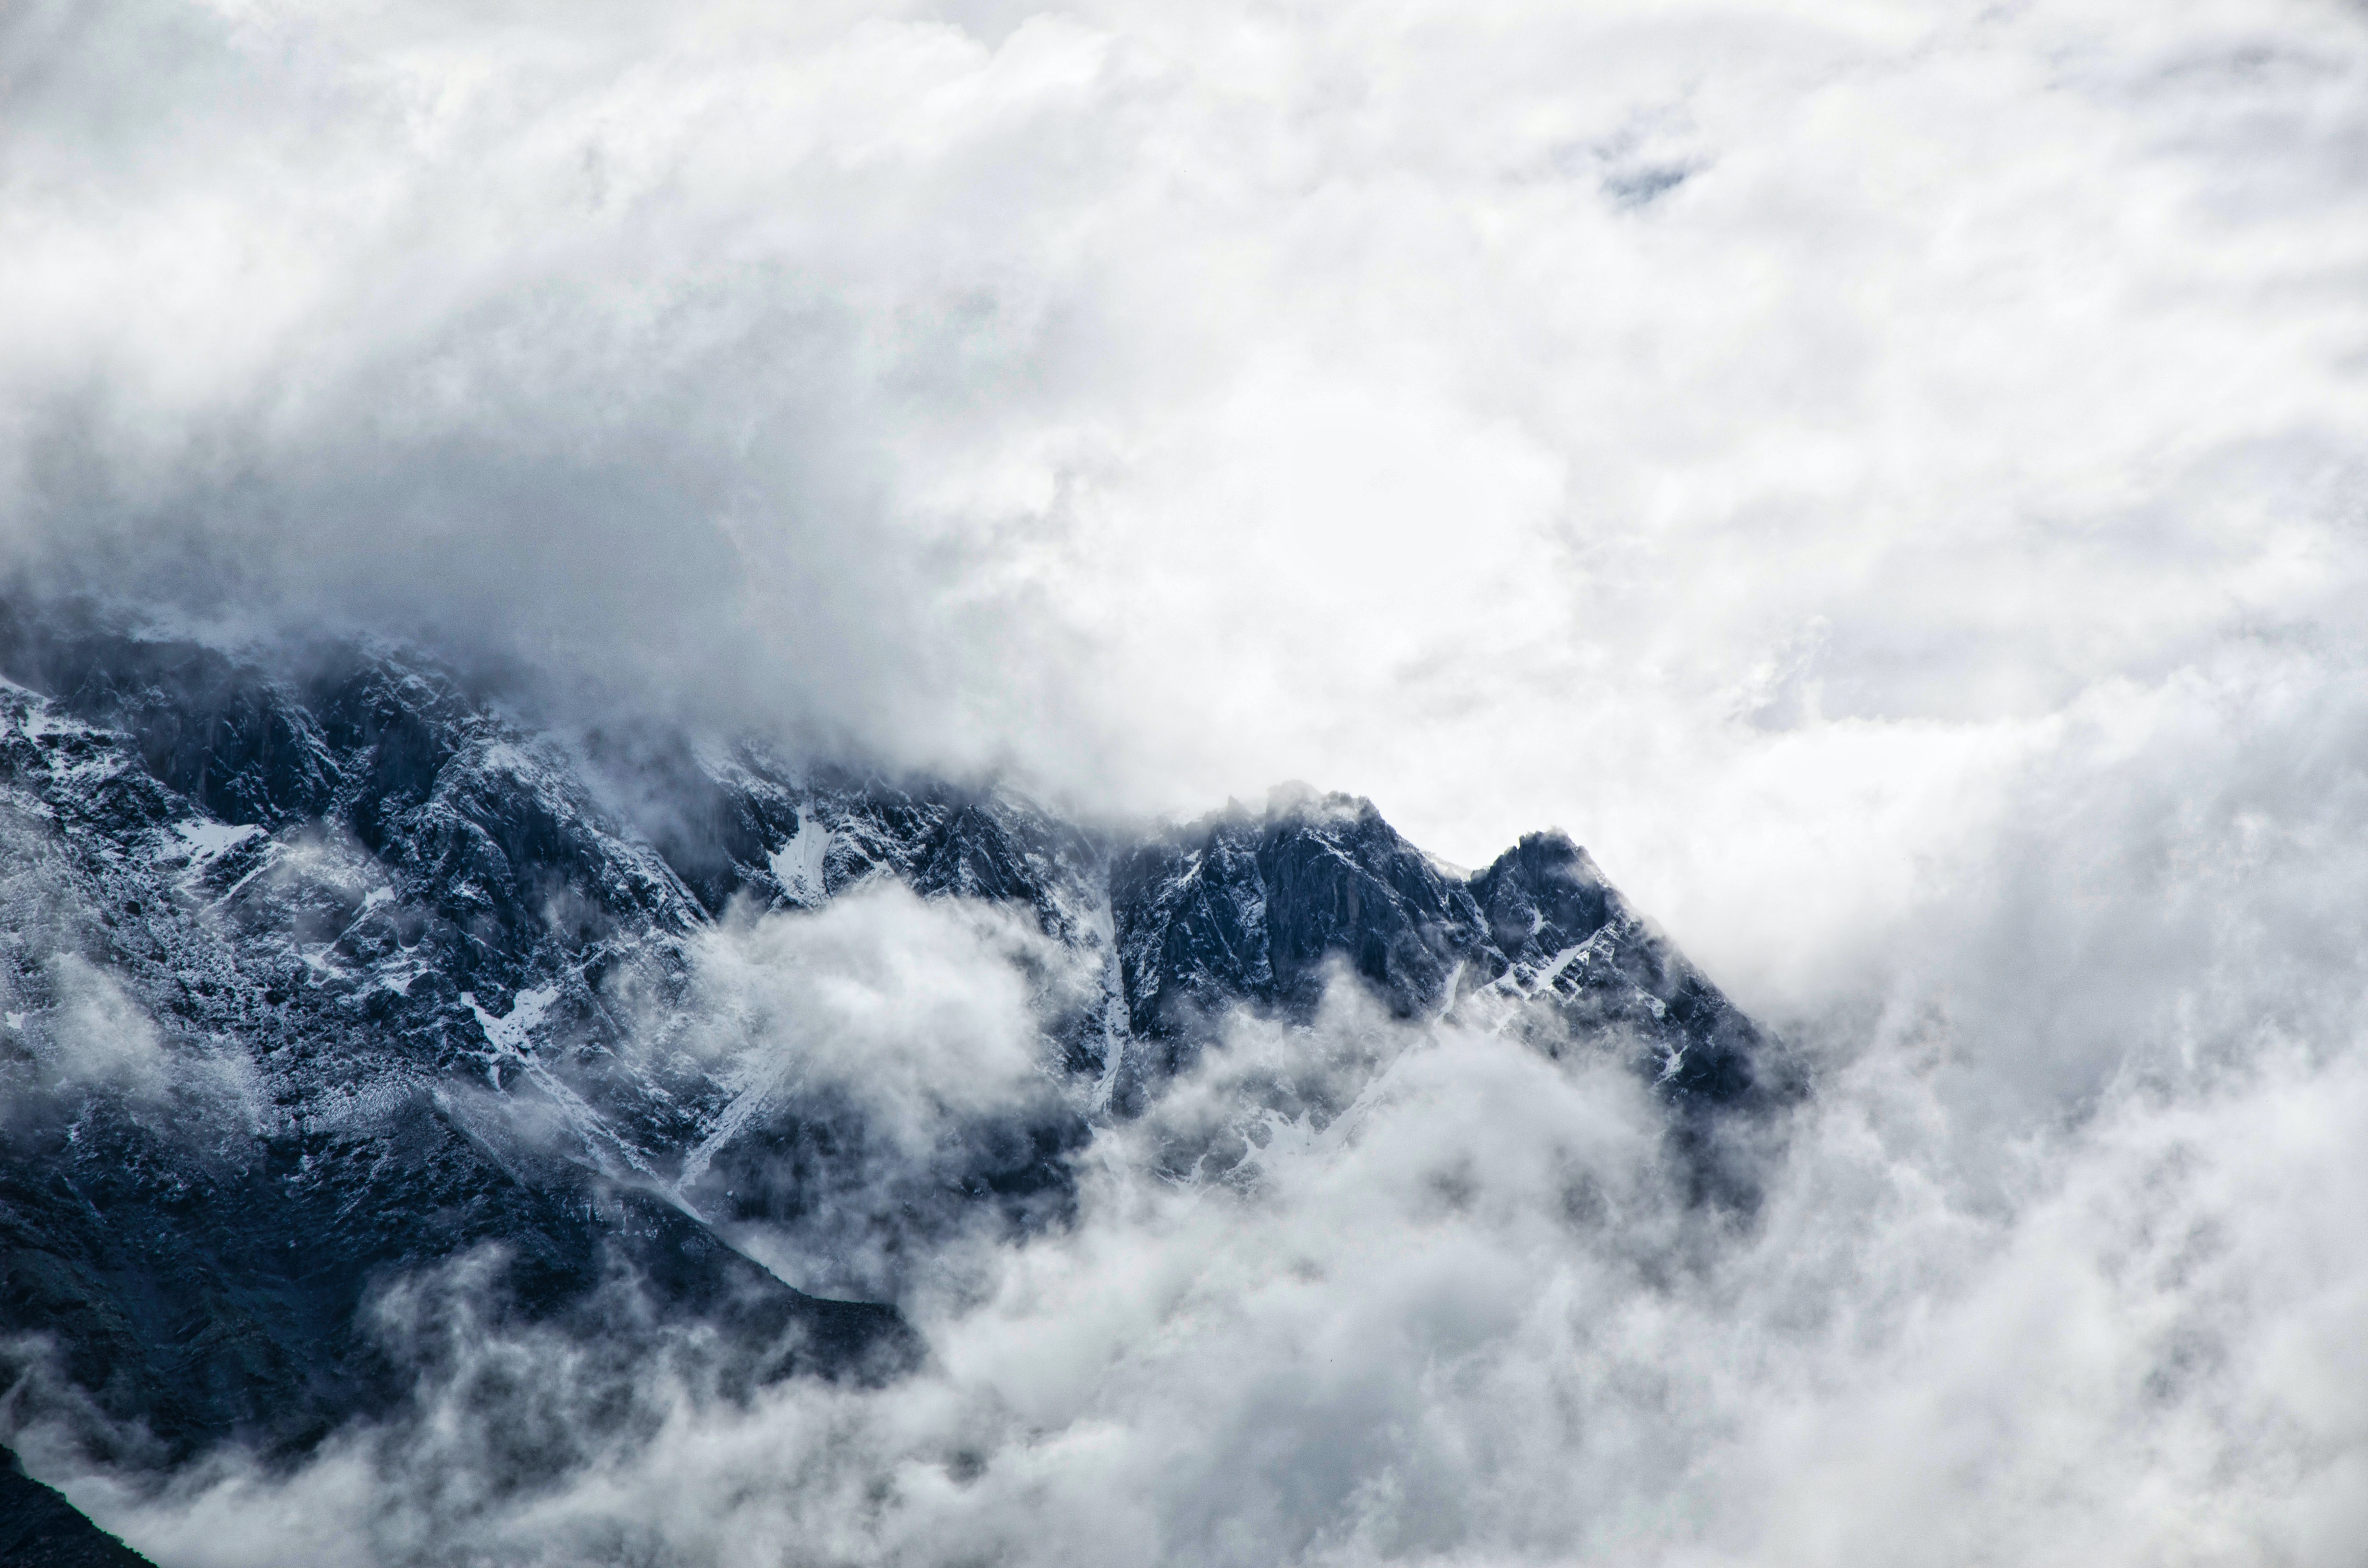 Cold clouds cover Caucasus Mountains on a foggy winter day